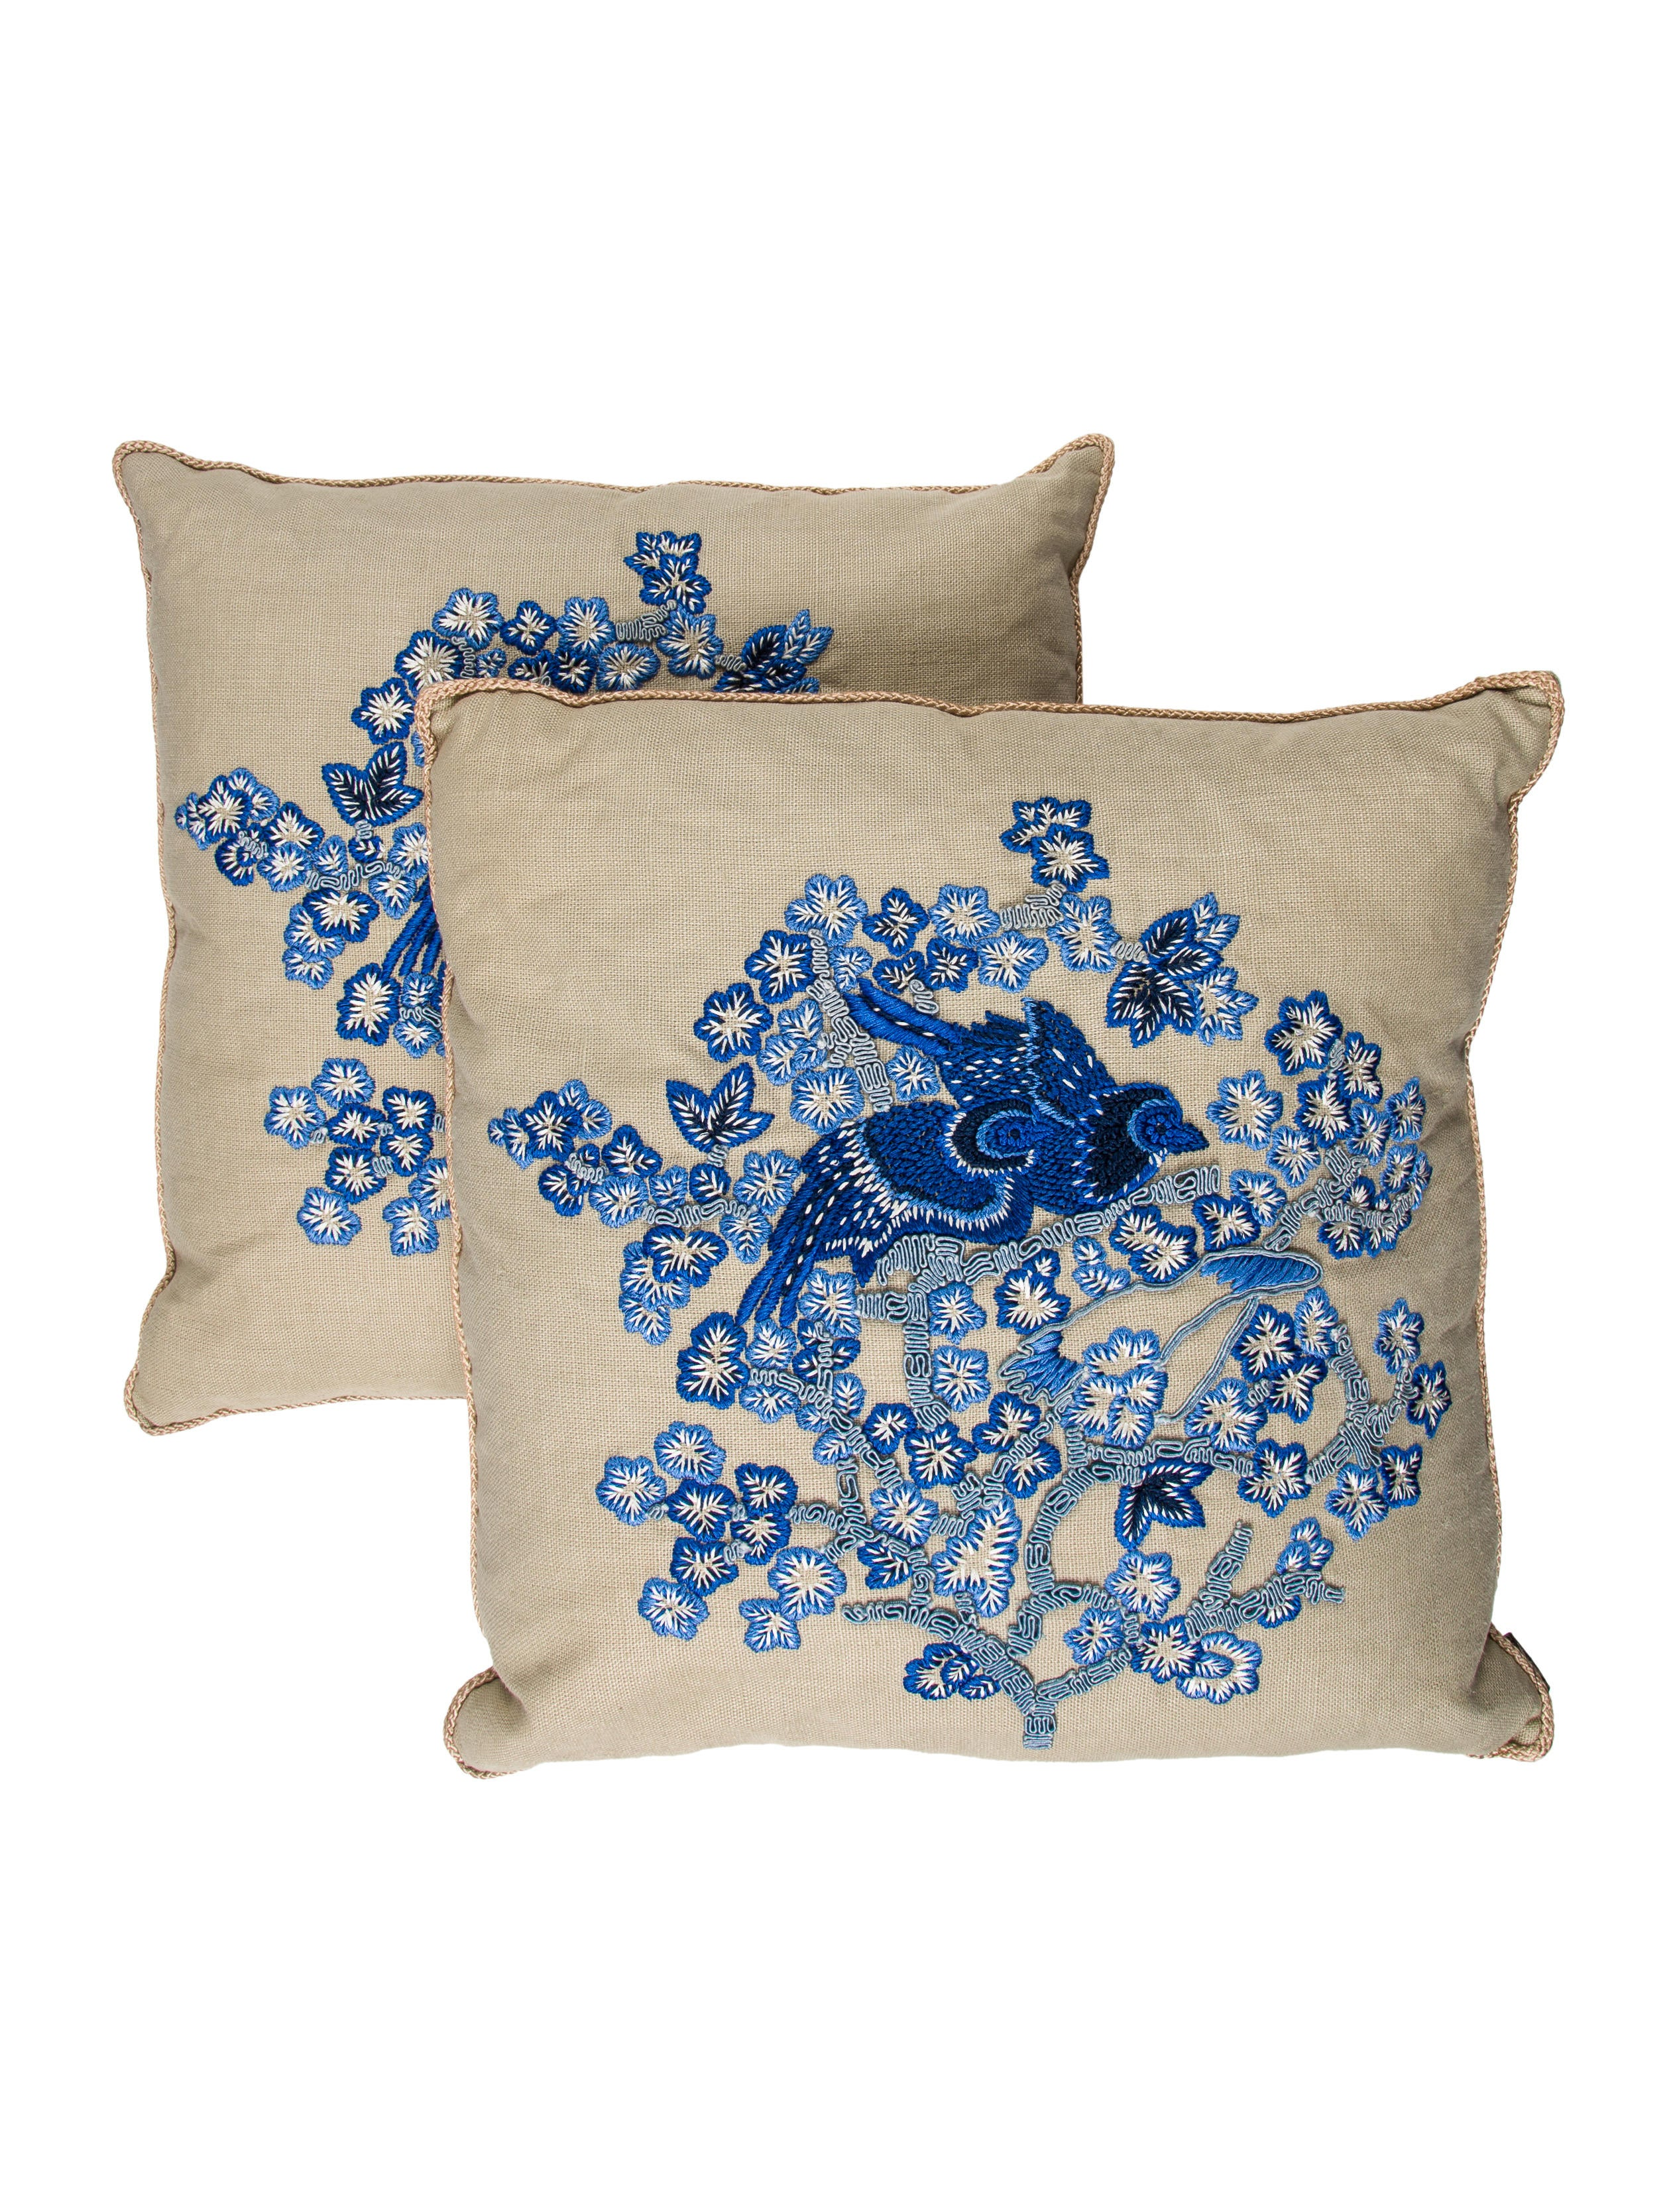 Embroidered State Throw Pillows : Ankasa Embroidered Throw Pillows - Bedding And Bath - ANKSA20026 The RealReal